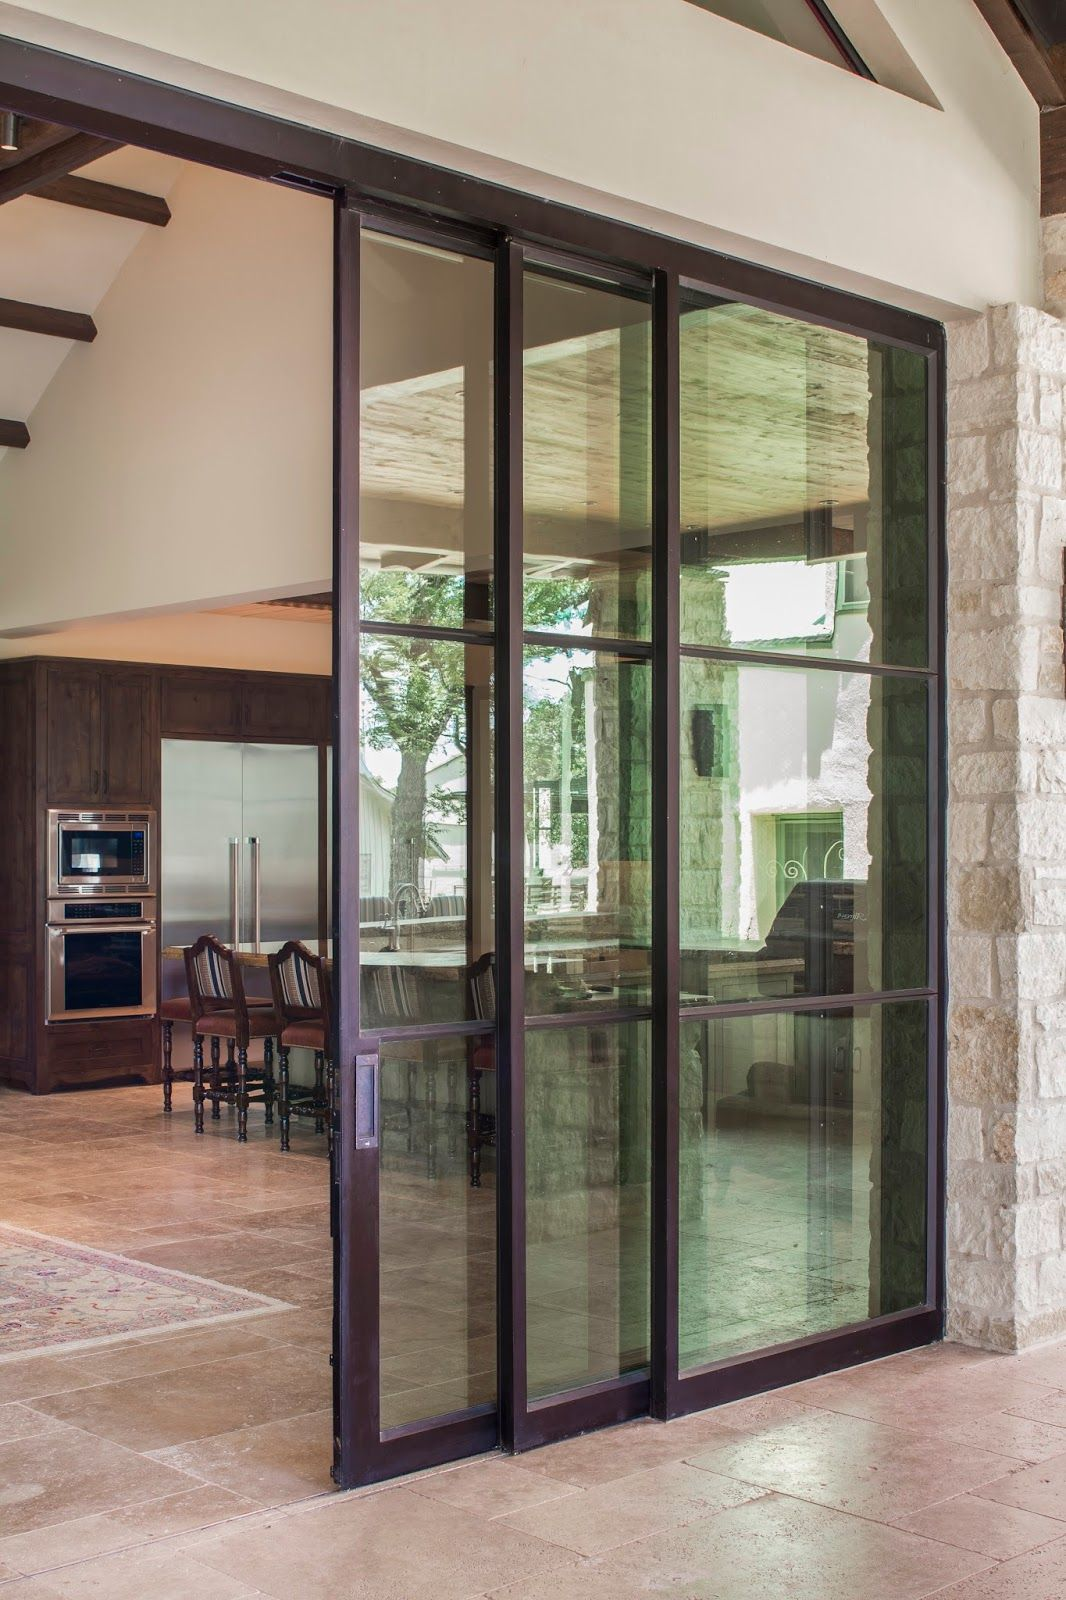 Portella Custom Steel Doors and Windows | Doors | Pinterest ...